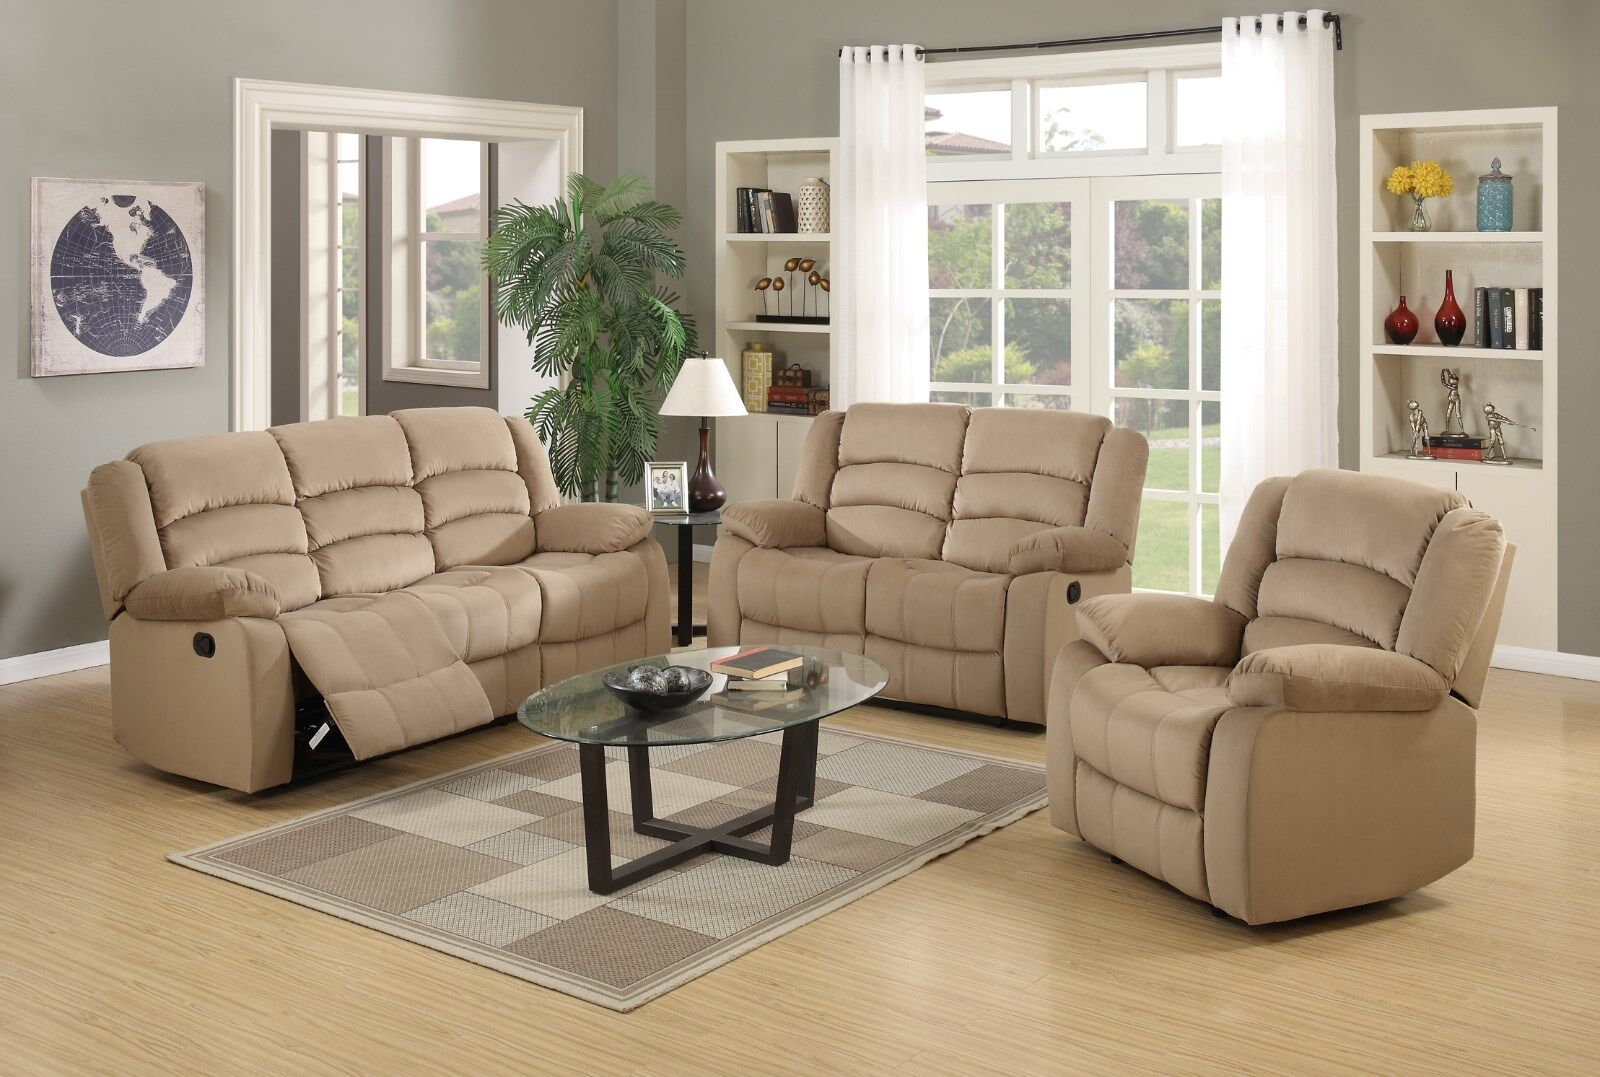 3 PCS Reclining Living Room Set in Mocha color Motion by Gl